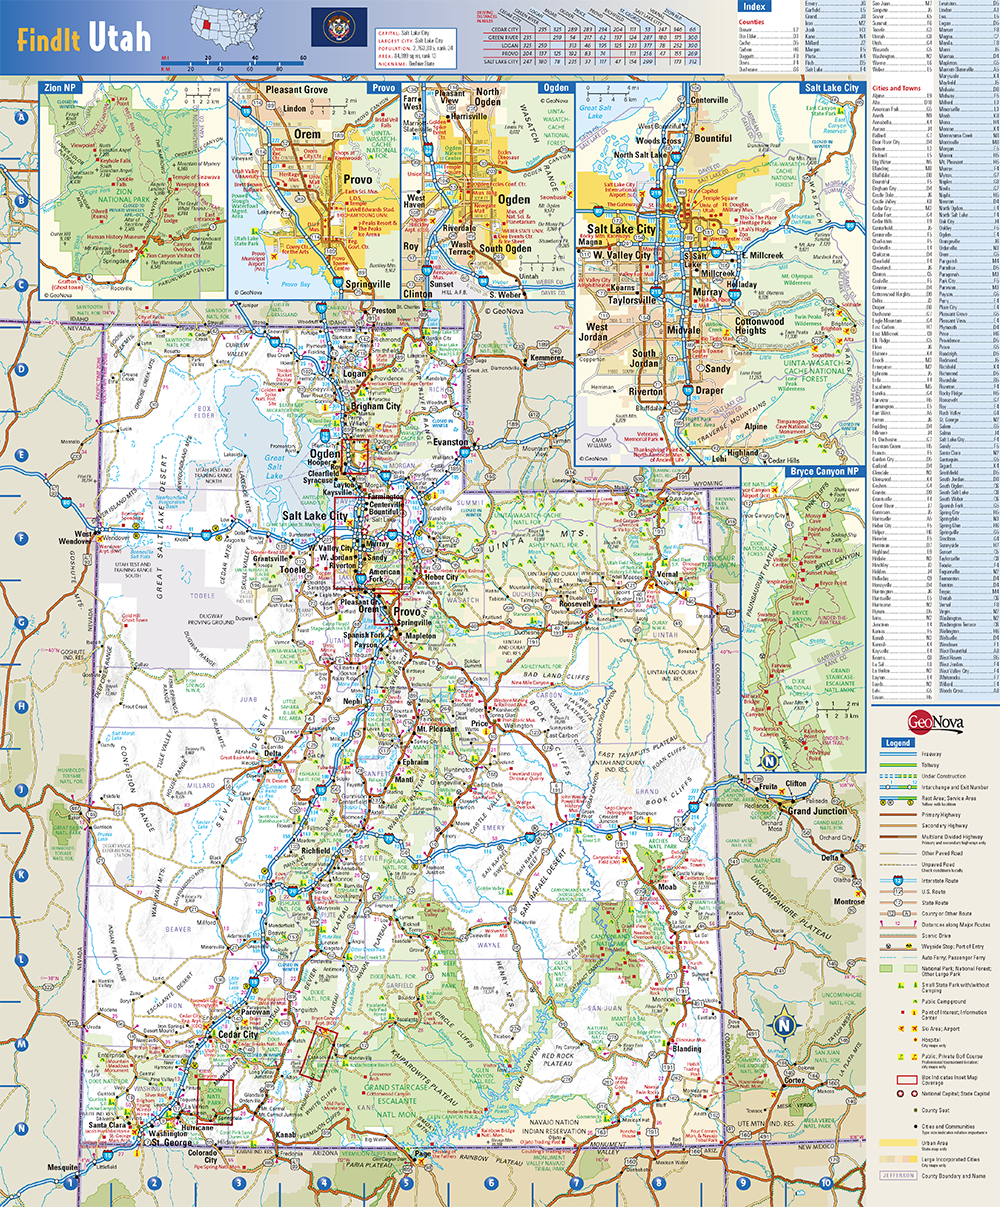 National Forest Map Store is a place to find all the National forest maps across the United States. Including Ranger District Maps, Atlases, BLM Maps and Forestry maps.